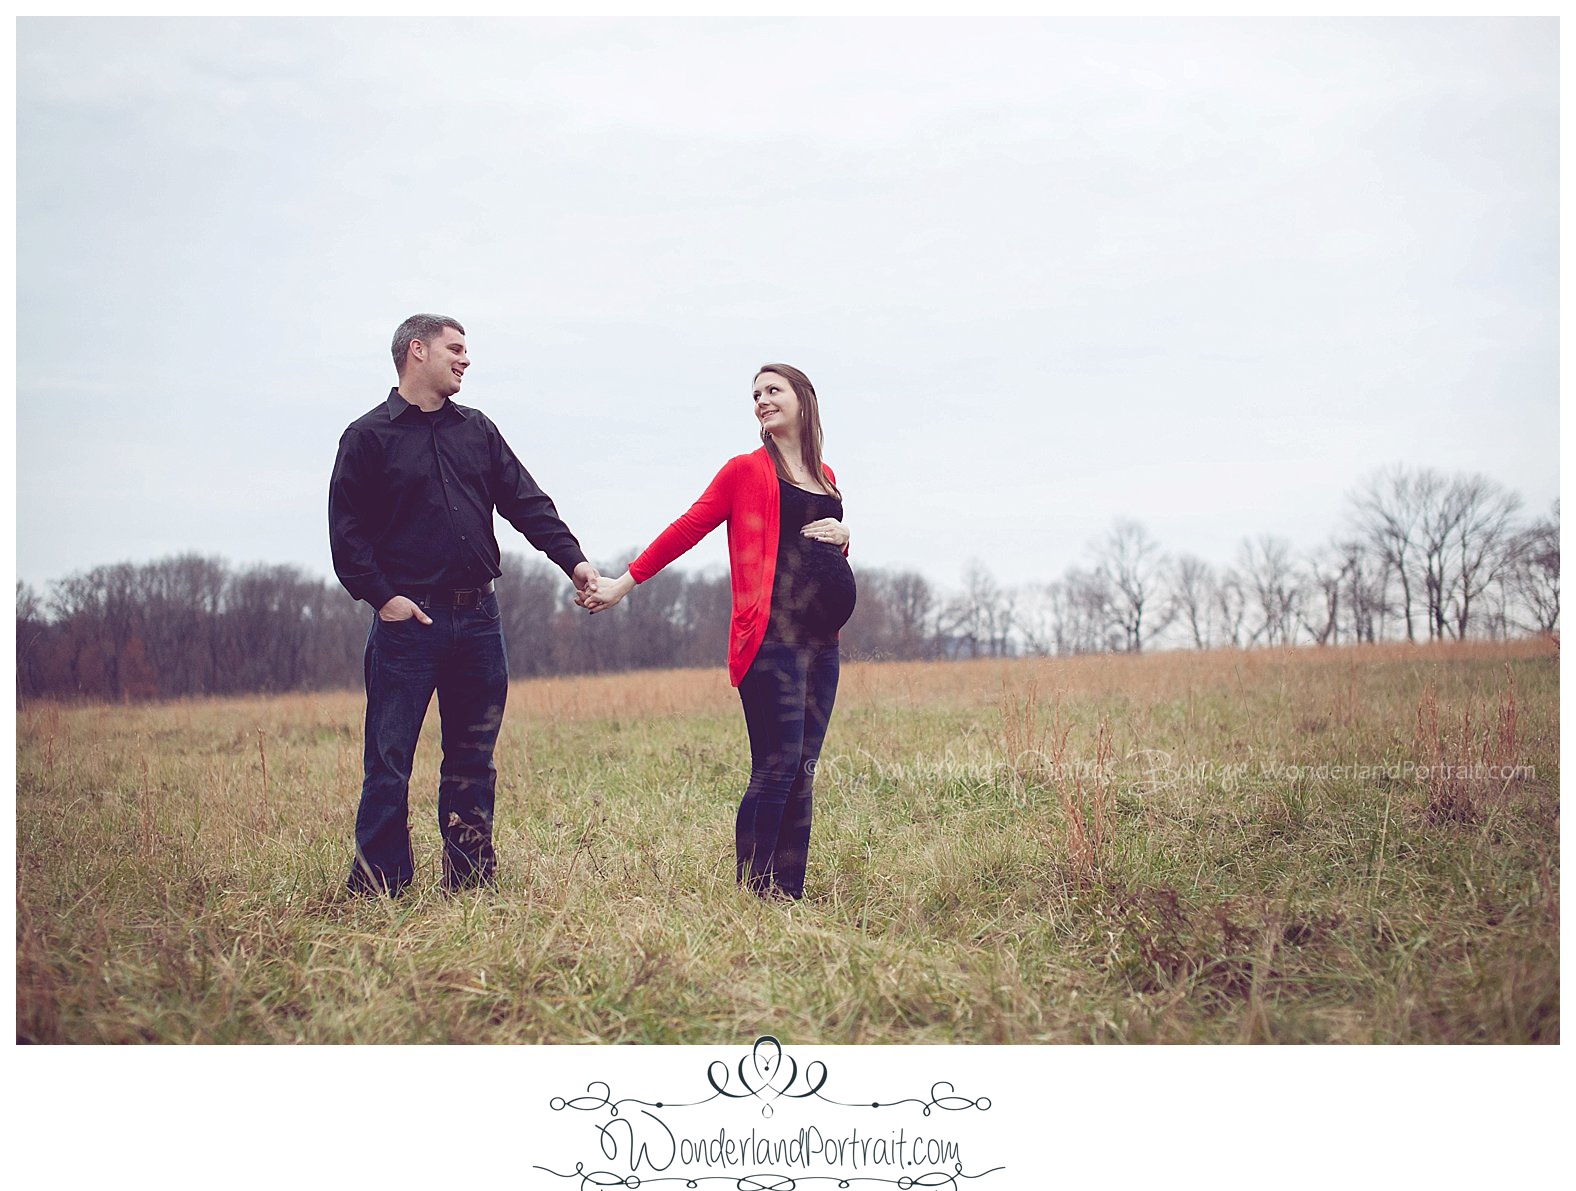 Bucks County Upper Makefield Newtown PA Maternity Pictures